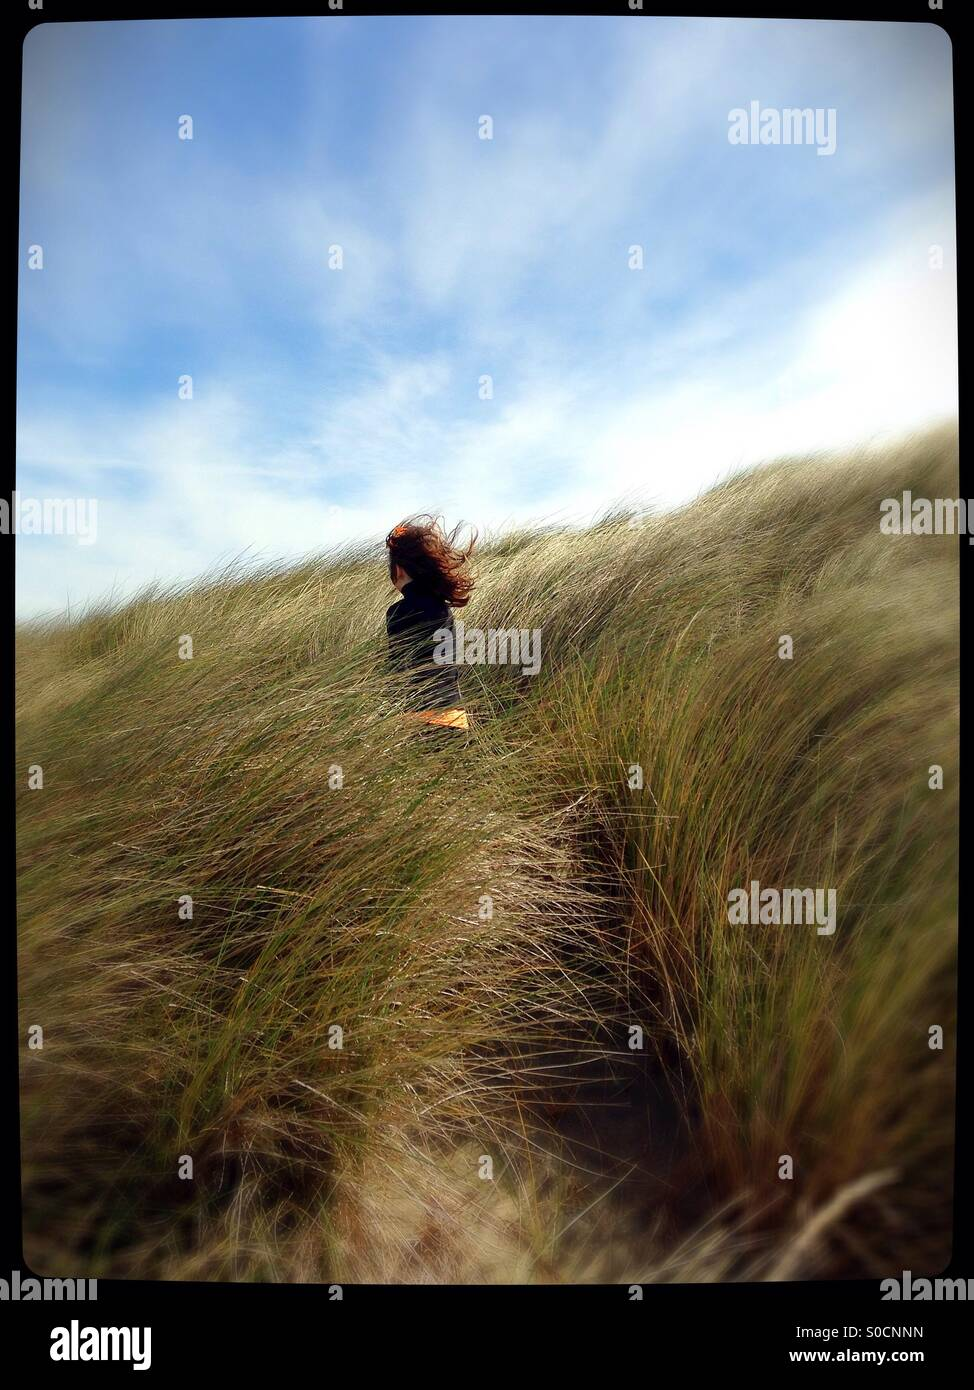 A young girl standing in tall grass in the wind. - Stock Image